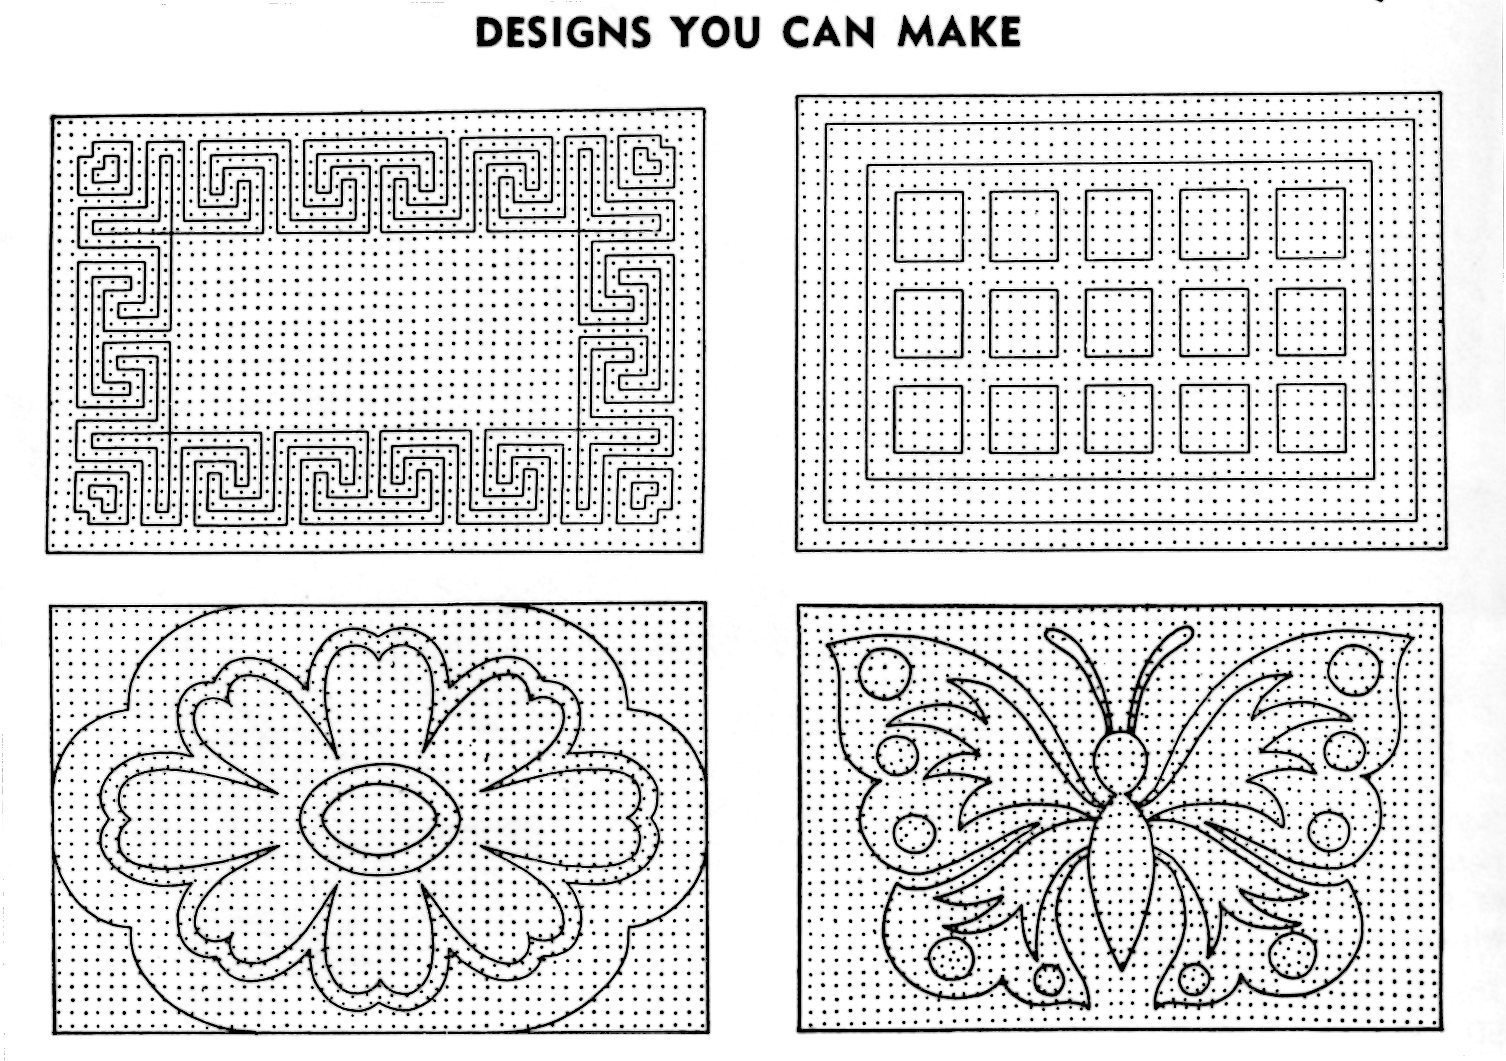 simple carpet designs. Pom Pon Rugs Designs You Can Make - Vintage Crafts And More Simple Carpet